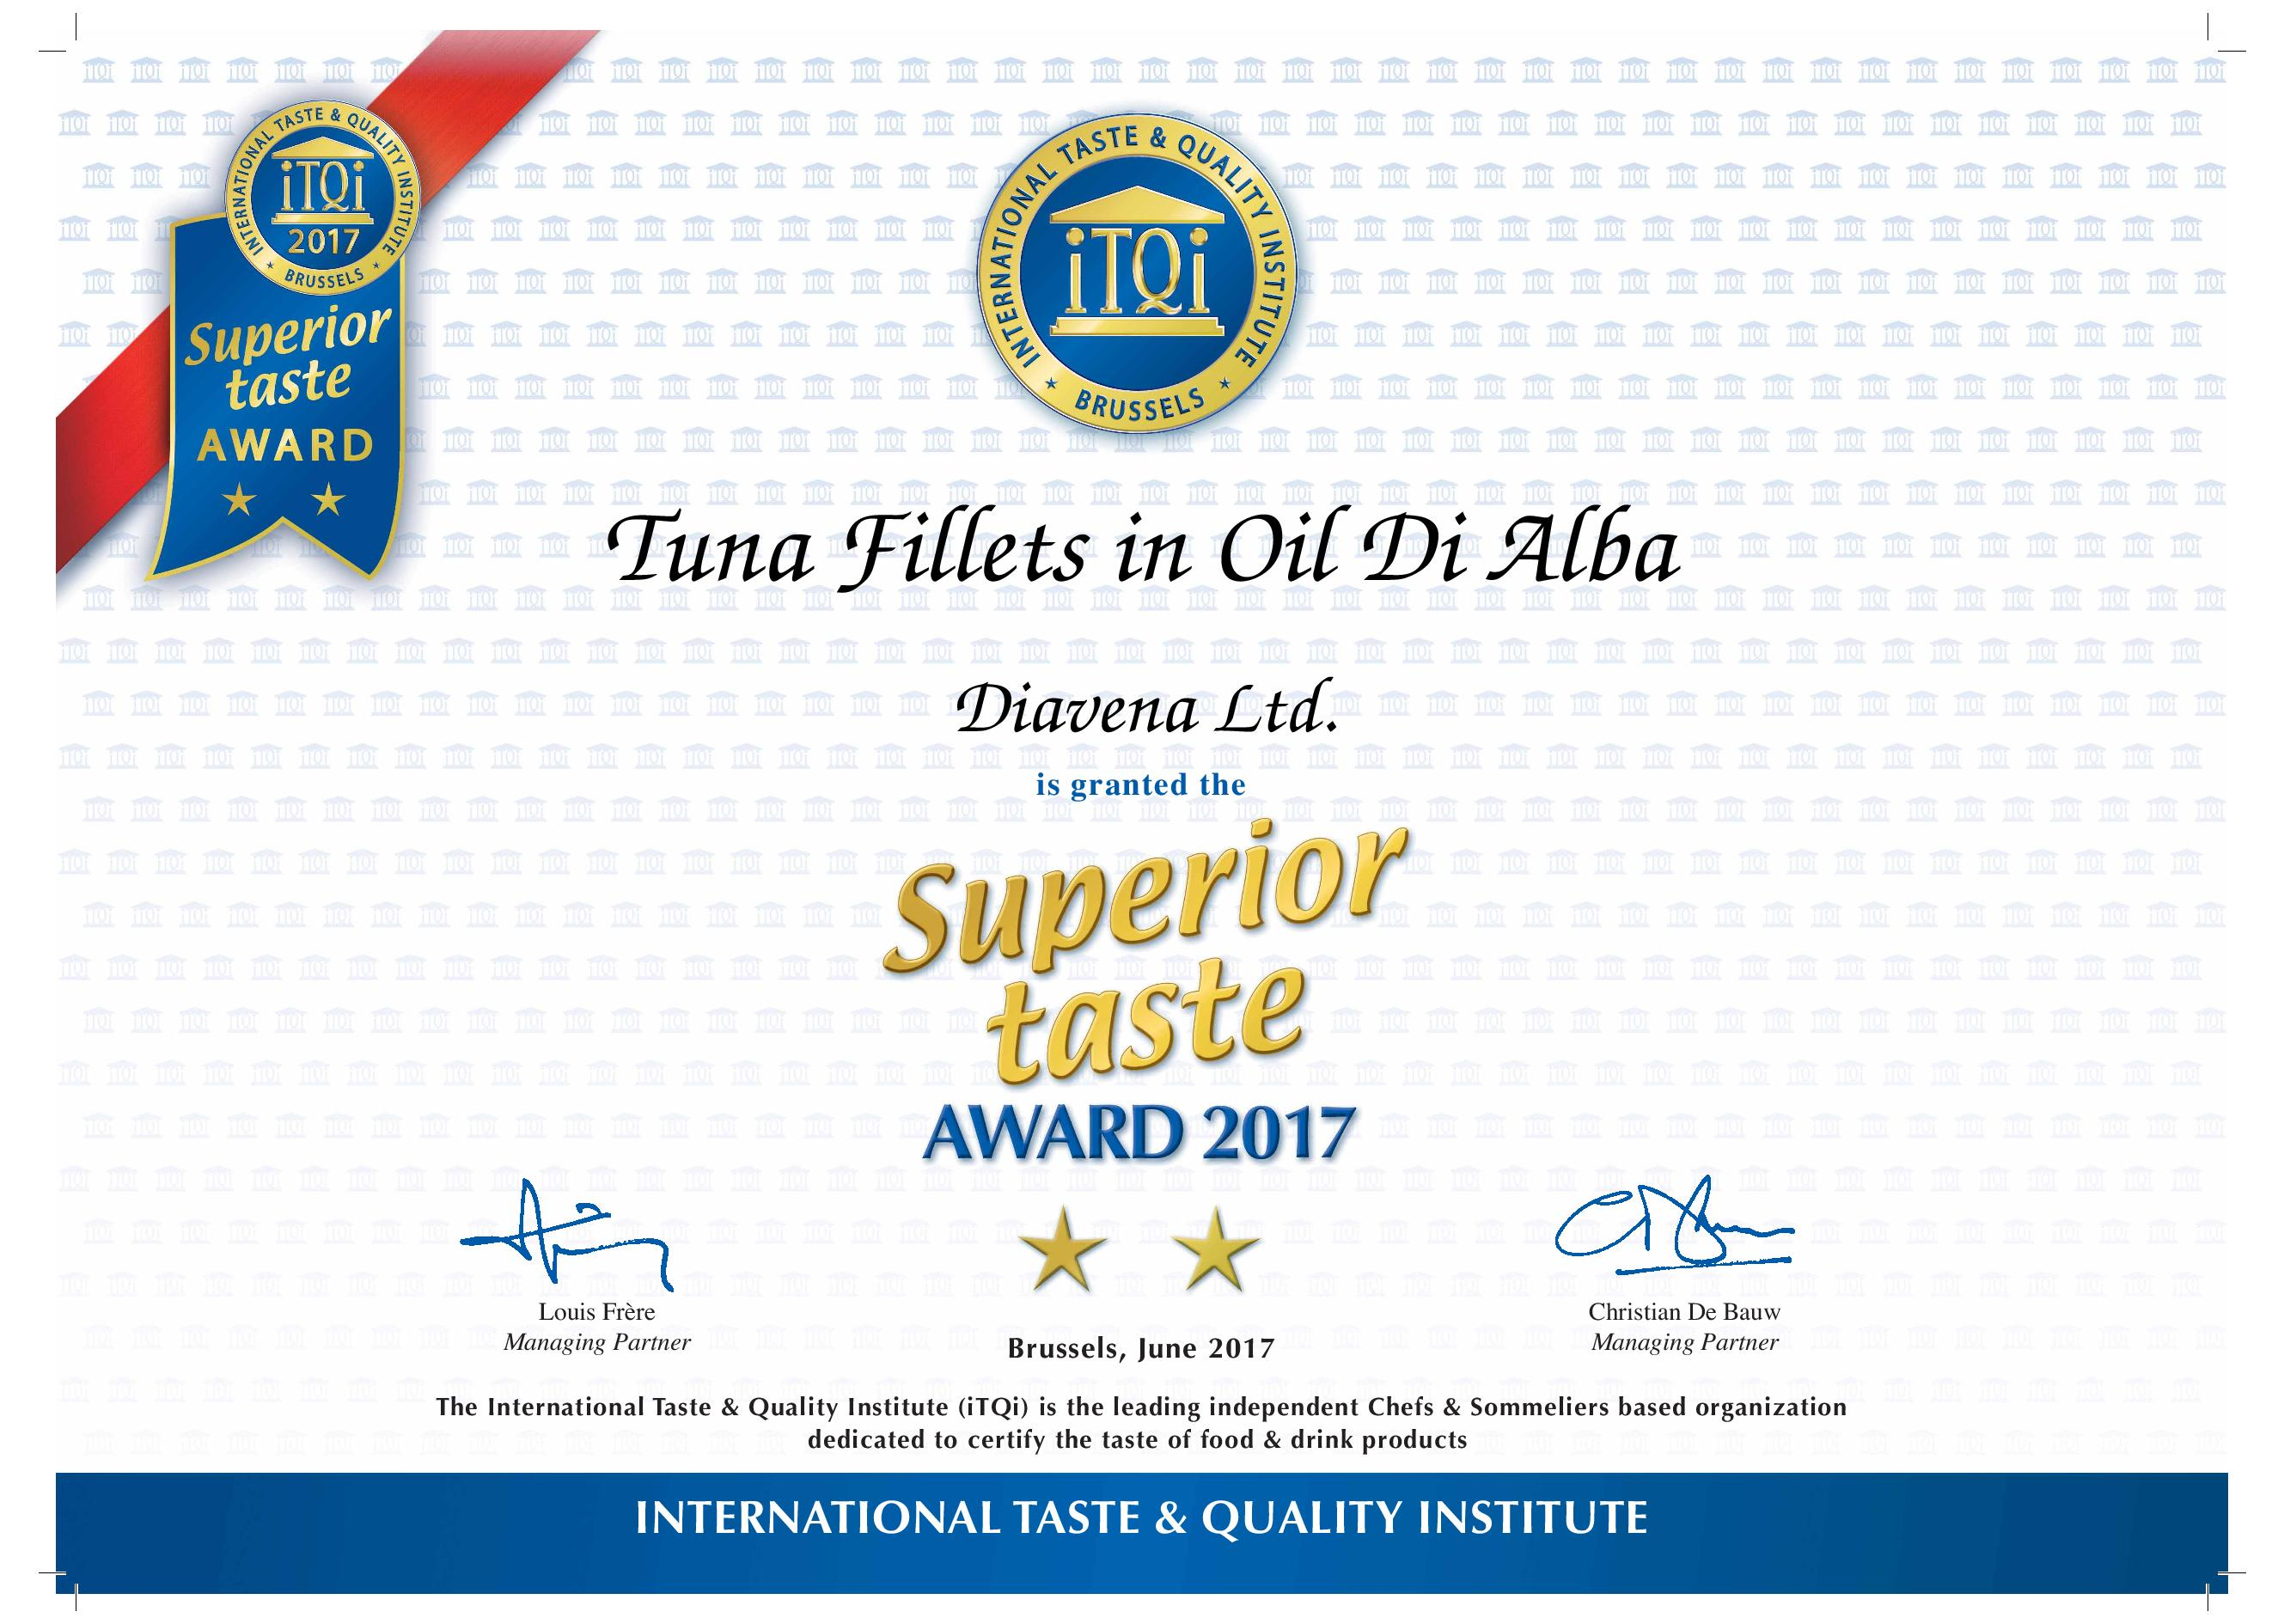 Tuna fillets in Oil Di Alba - Superior taste award - 2 Golden Stars